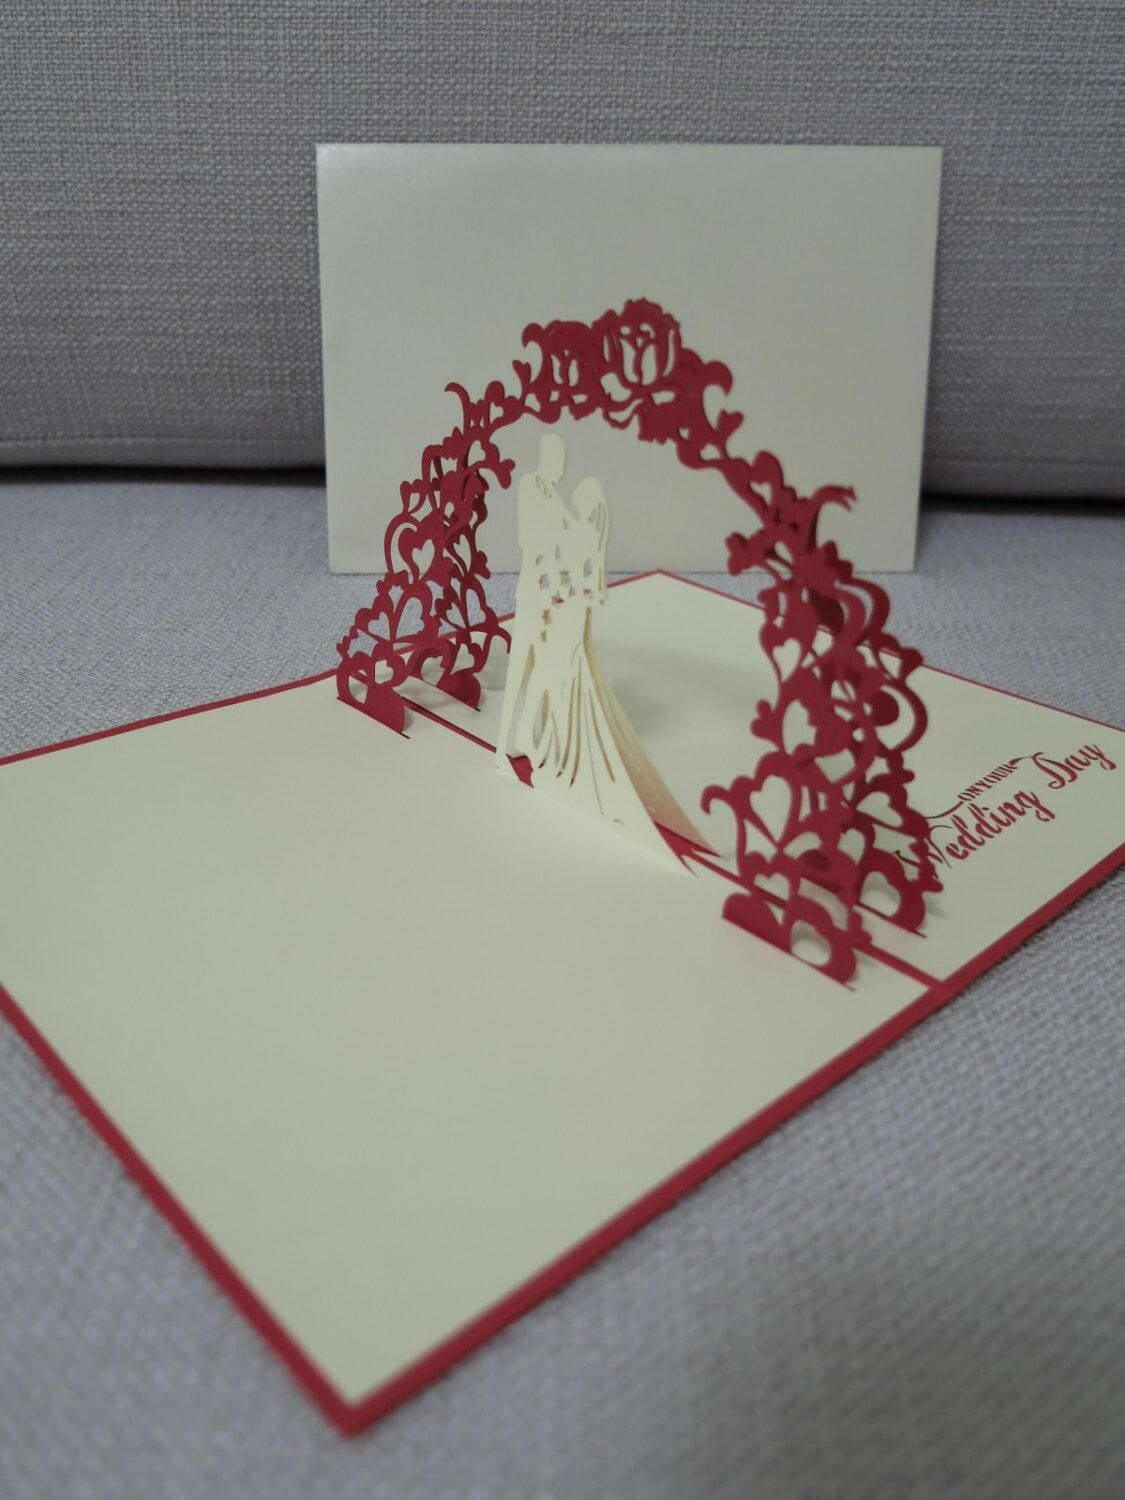 3D Pop Up Wedding Card - Wedding Card - Pop Up Card For Wedding Pop Up Card Template Free